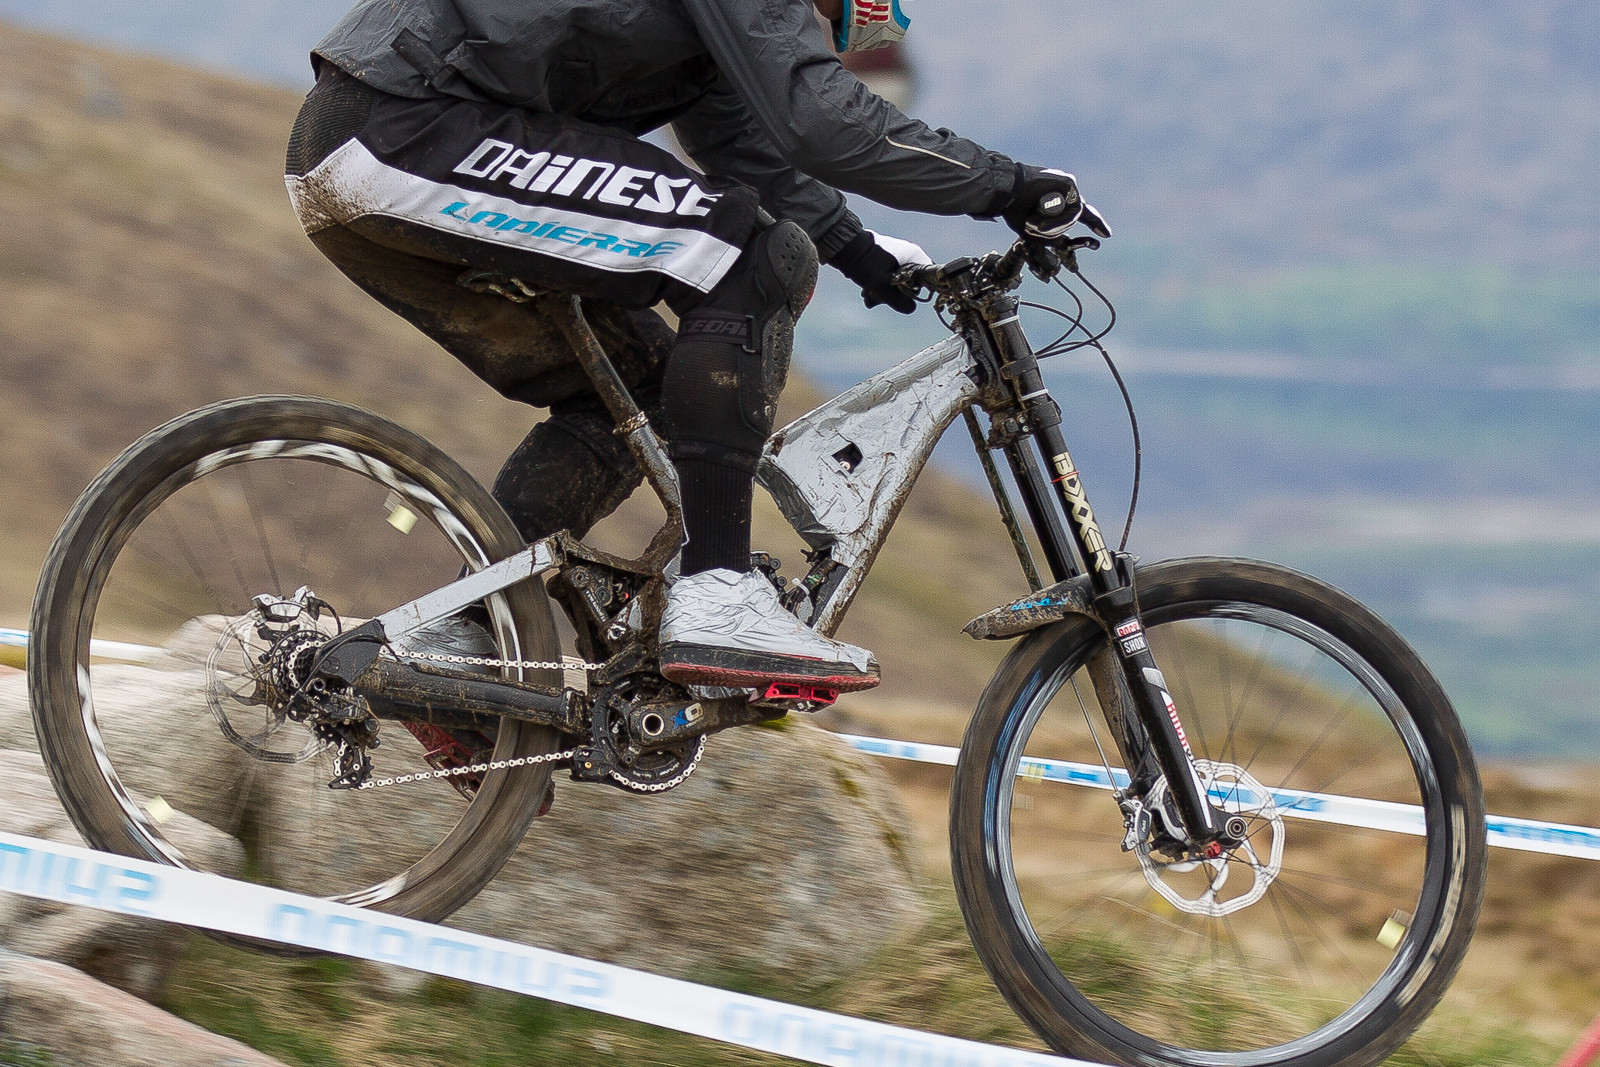 All New Lapierre Prototype DH Bike Spotted in Fort William - All New Lapierre Prototype Spotted in Fort William - Mountain Biking Pictures - Vital MTB